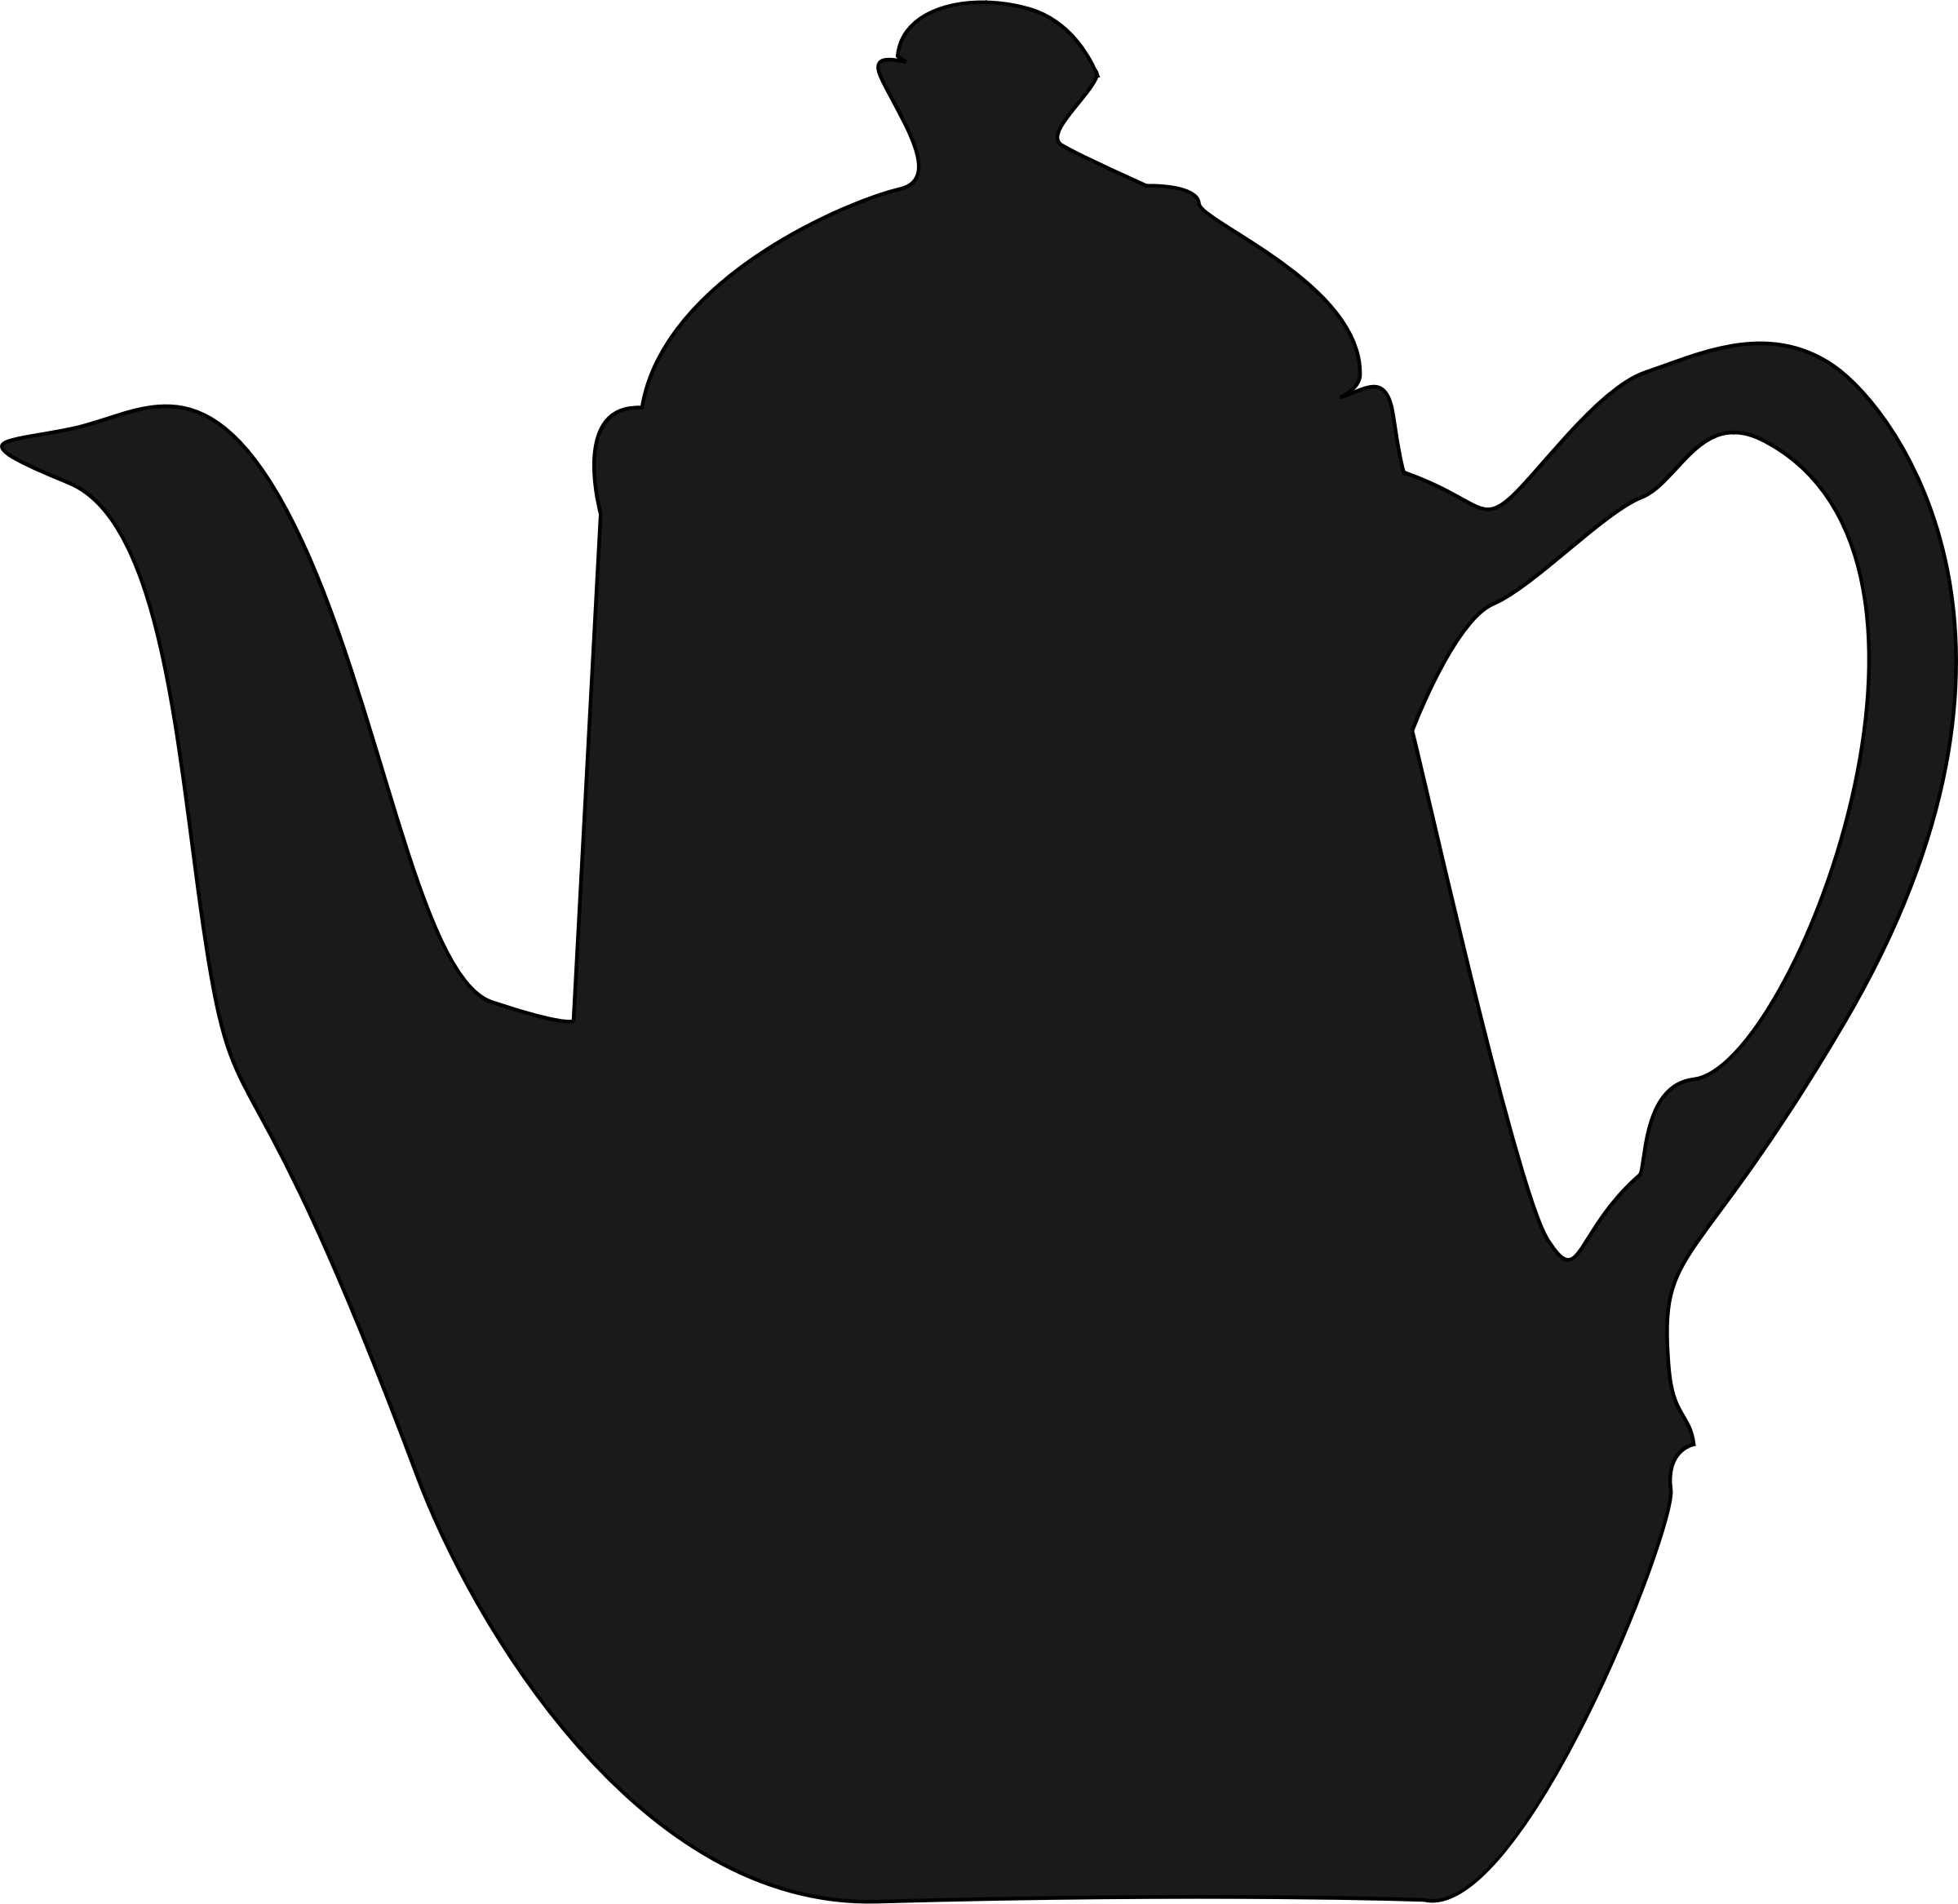 teapot silhouette at getdrawings com free for personal use teapot rh getdrawings com